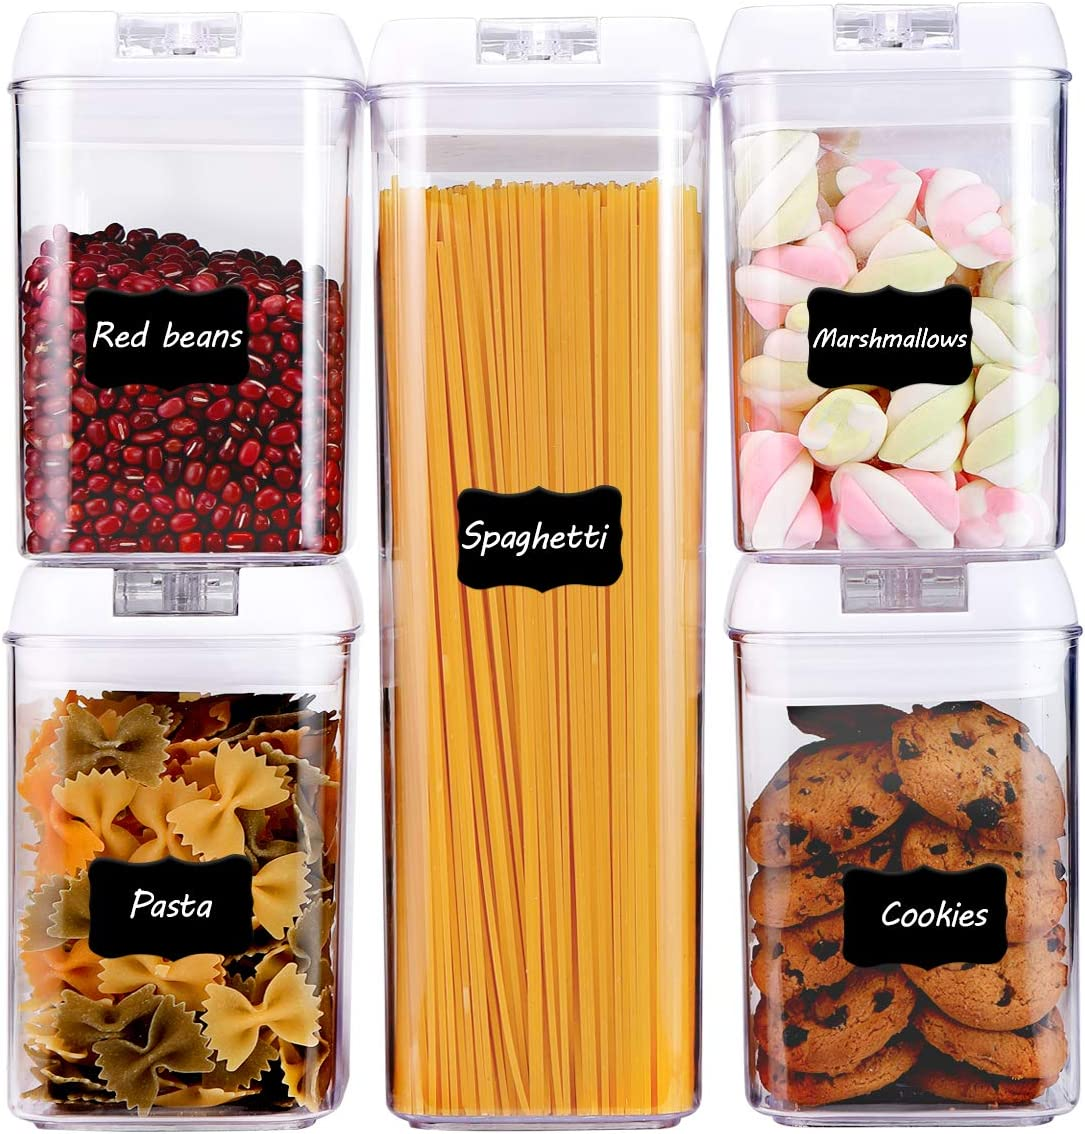 Airtight Food Storage Containers, 5 Pieces Plastic Cereal Container with Easy Lock Lids, BPA Free Cereal Containers for Kitchen Pantry Organization and Storage, Include 8 Labels and Marker